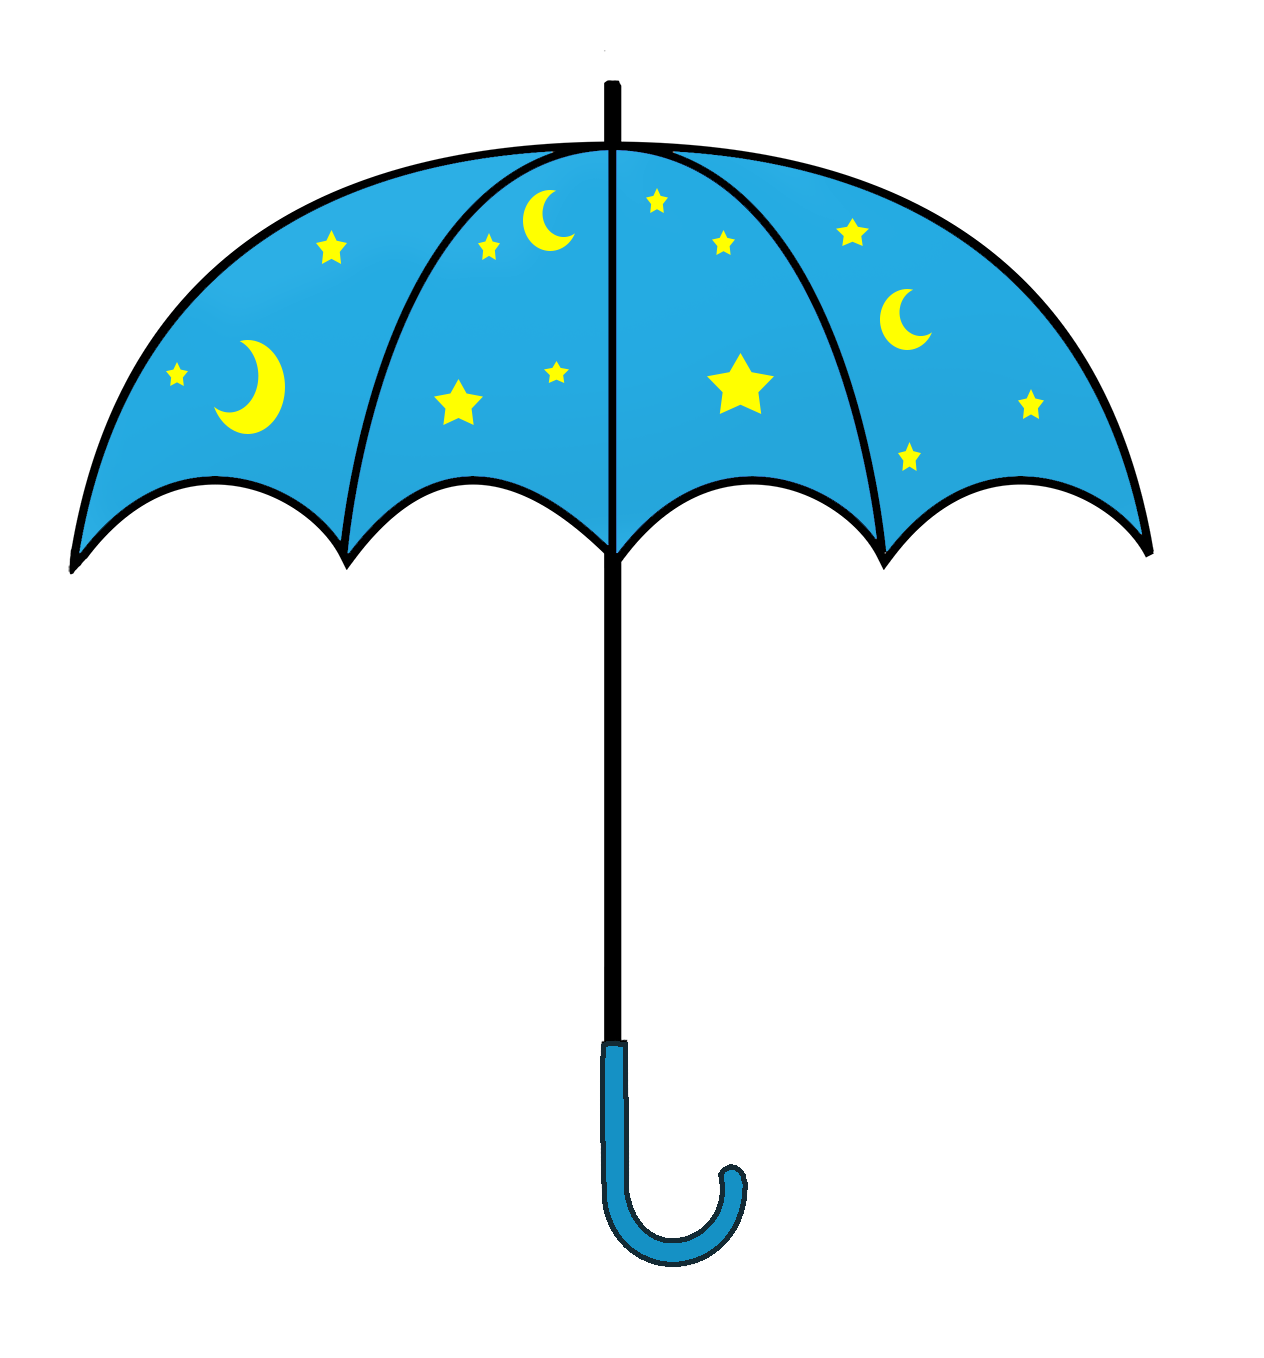 The Sandman's umbrella with stars and moon